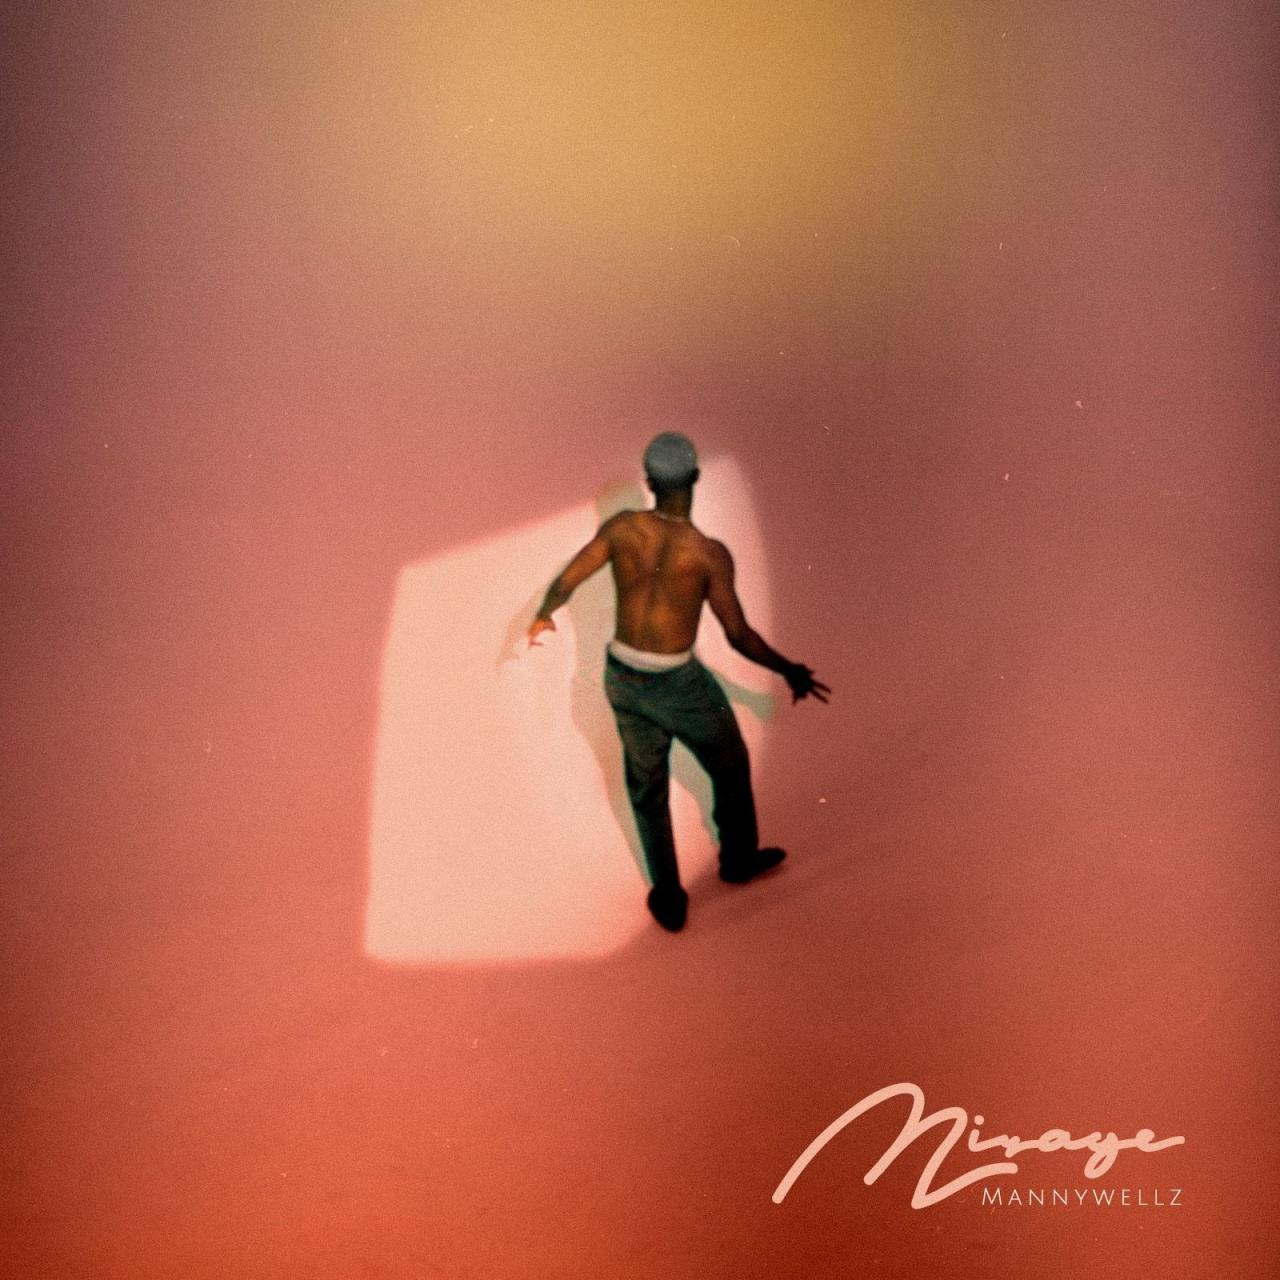 Mannywellz Ft. Tems - Peace   Mp3 Download